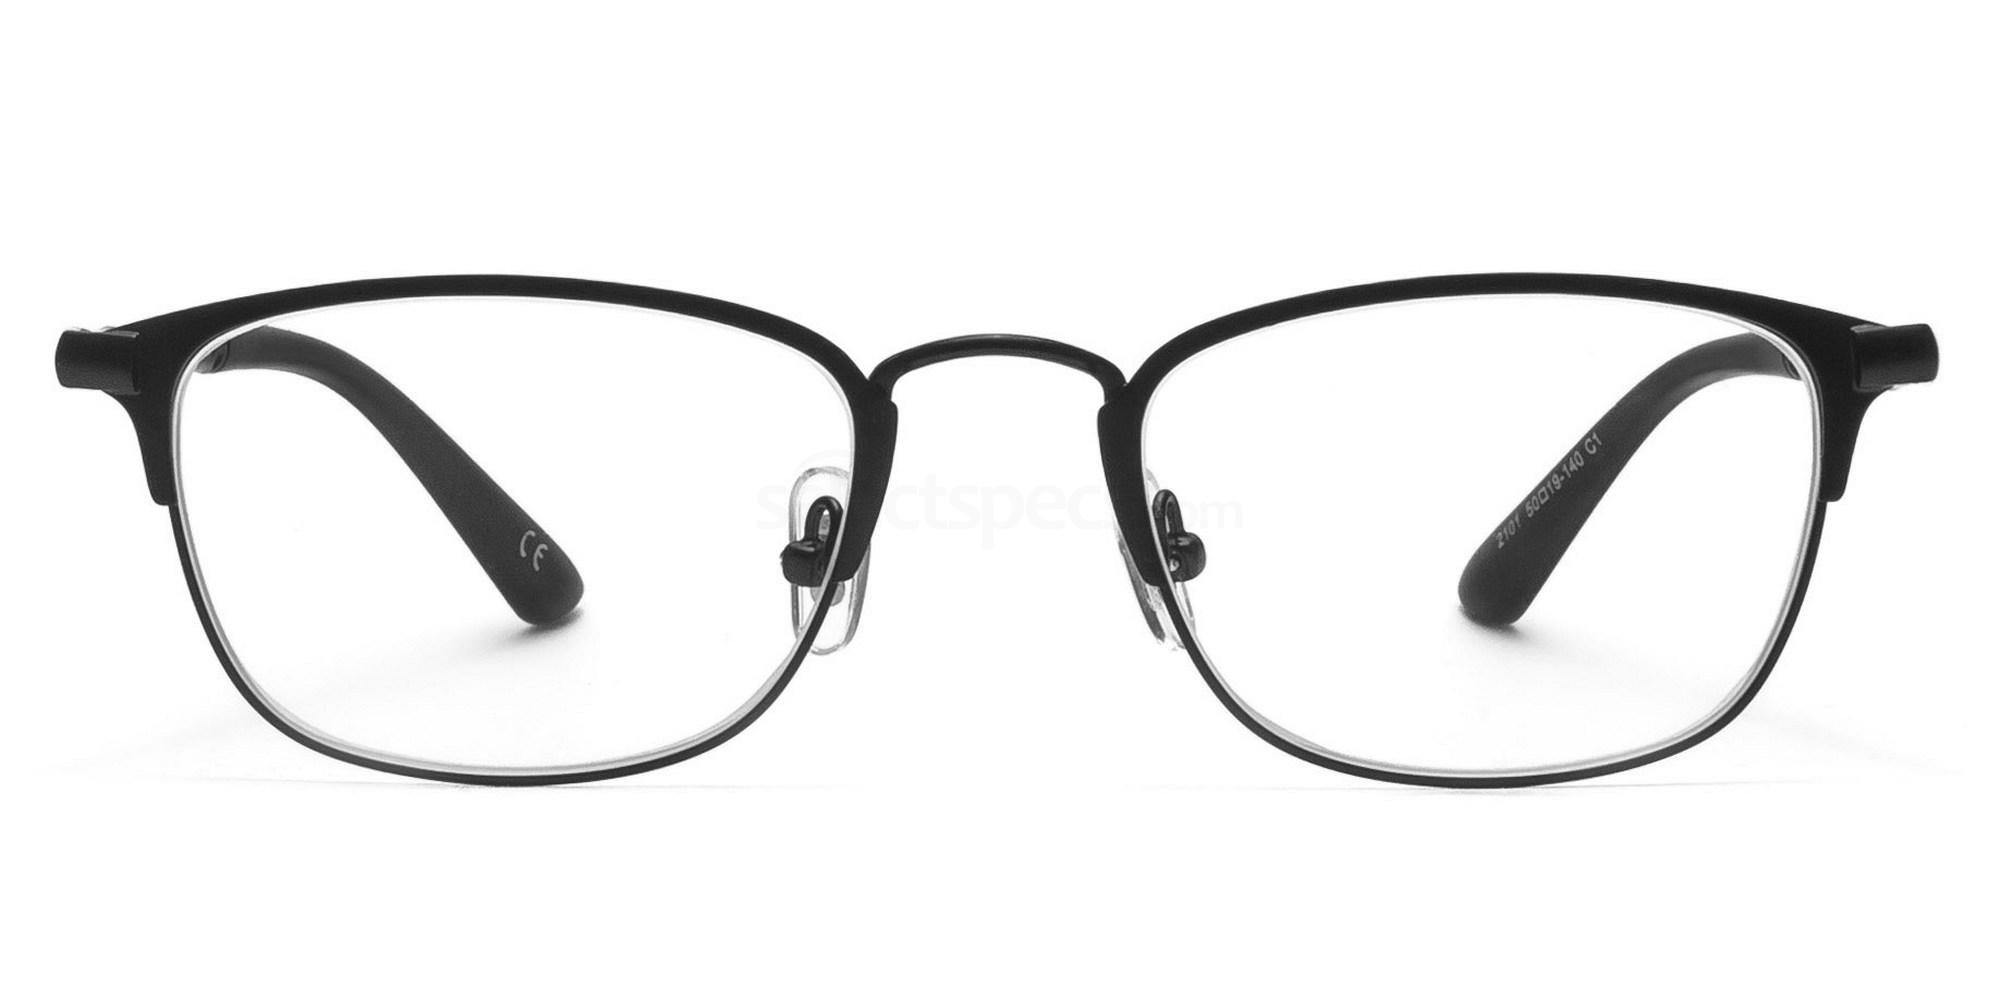 C1 M2101 Metal Glasses, Infinity